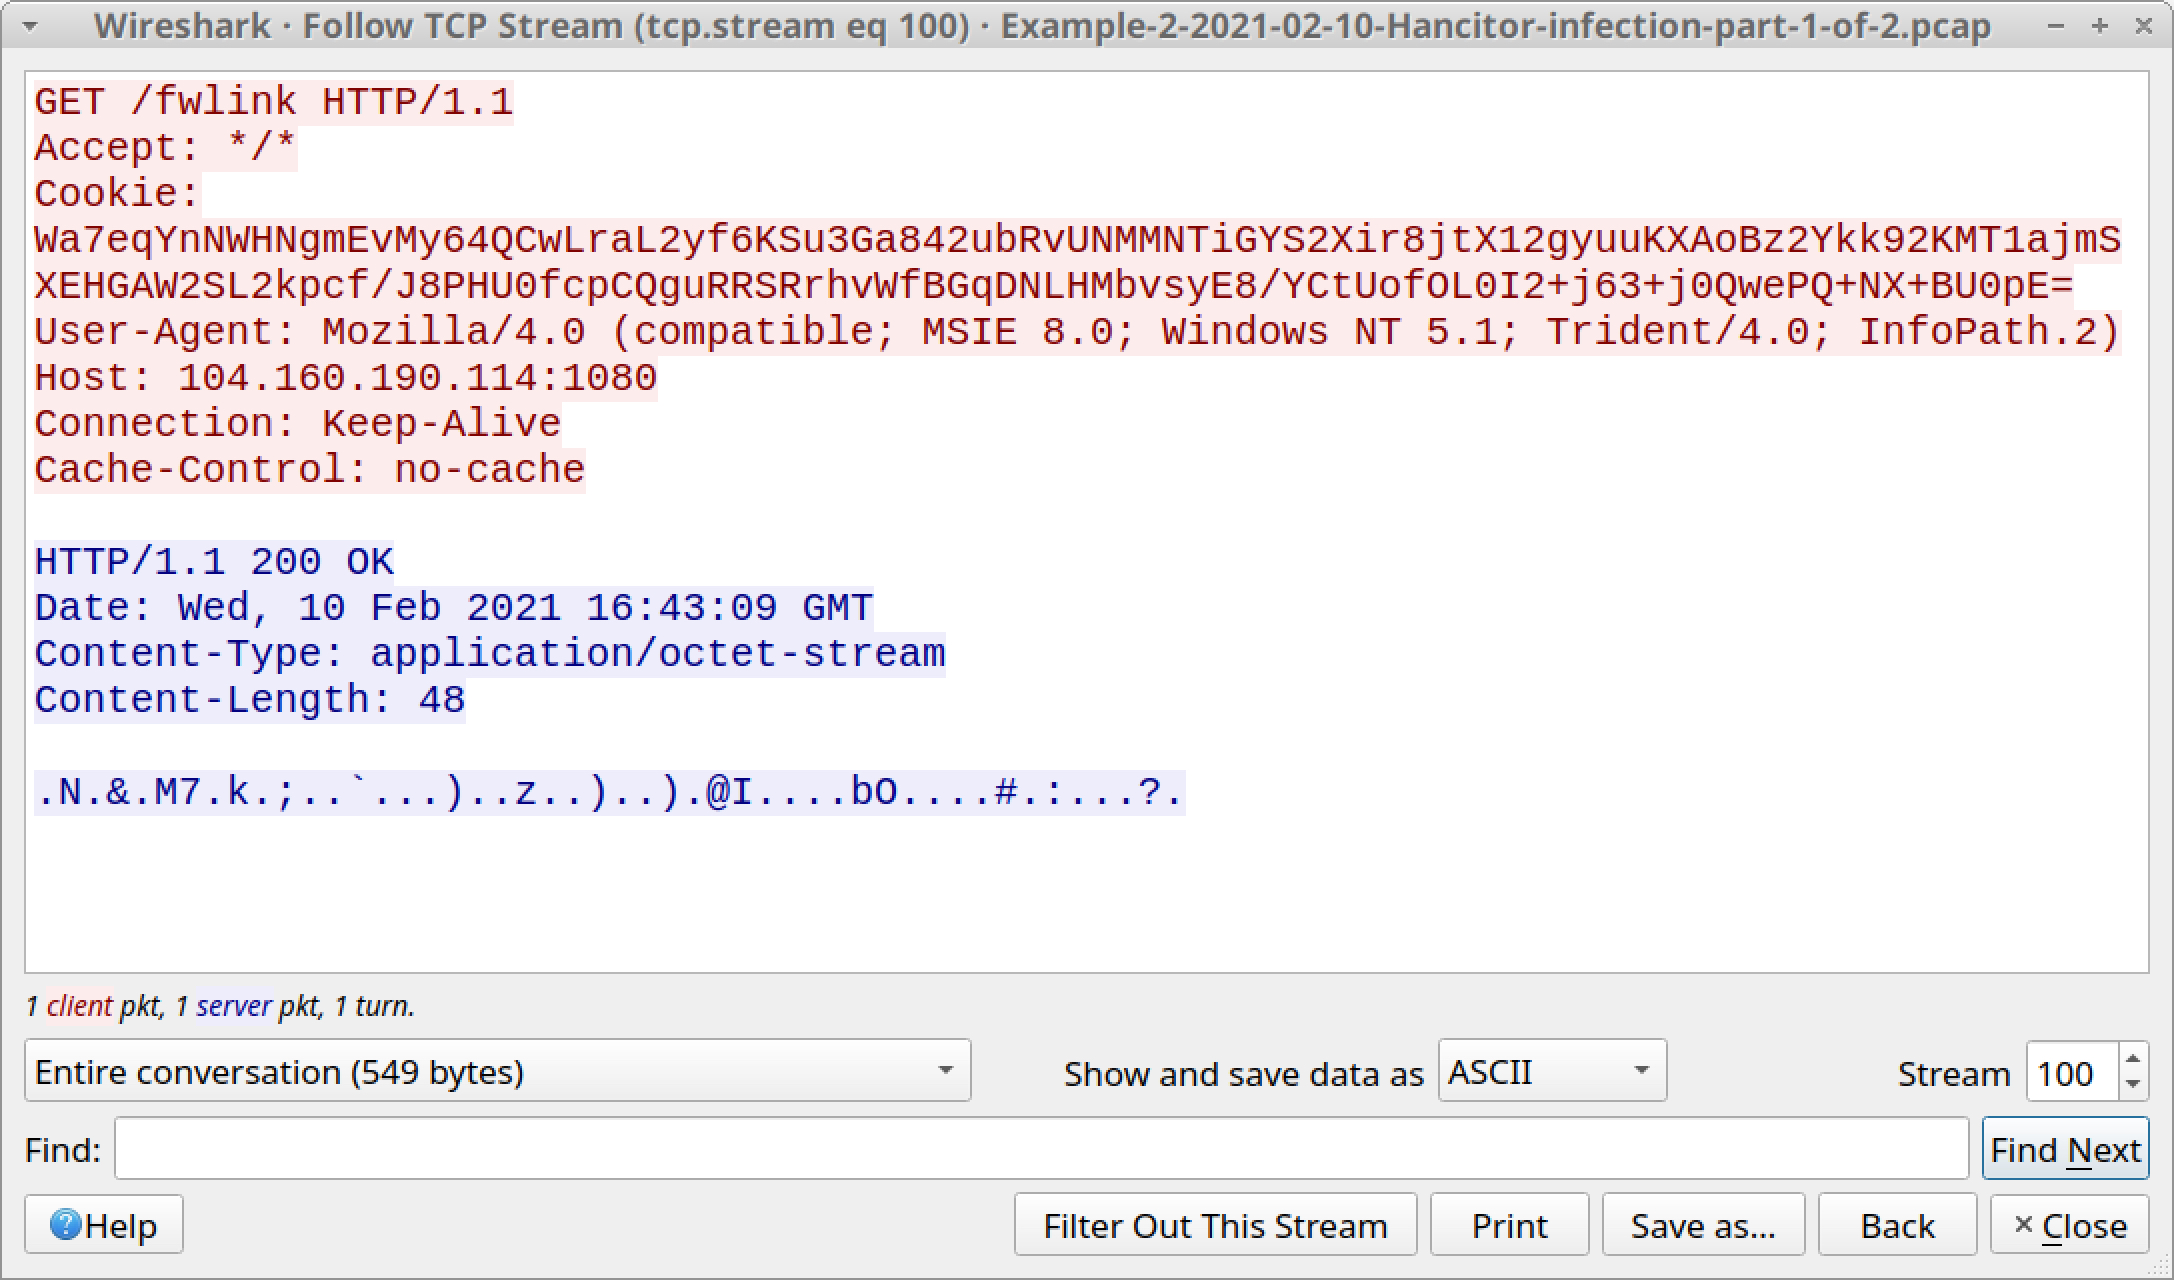 The first HTTP request to 104.160.190[.]114:8080 for fwlink returned 48 bytes of encoded data, shown here.